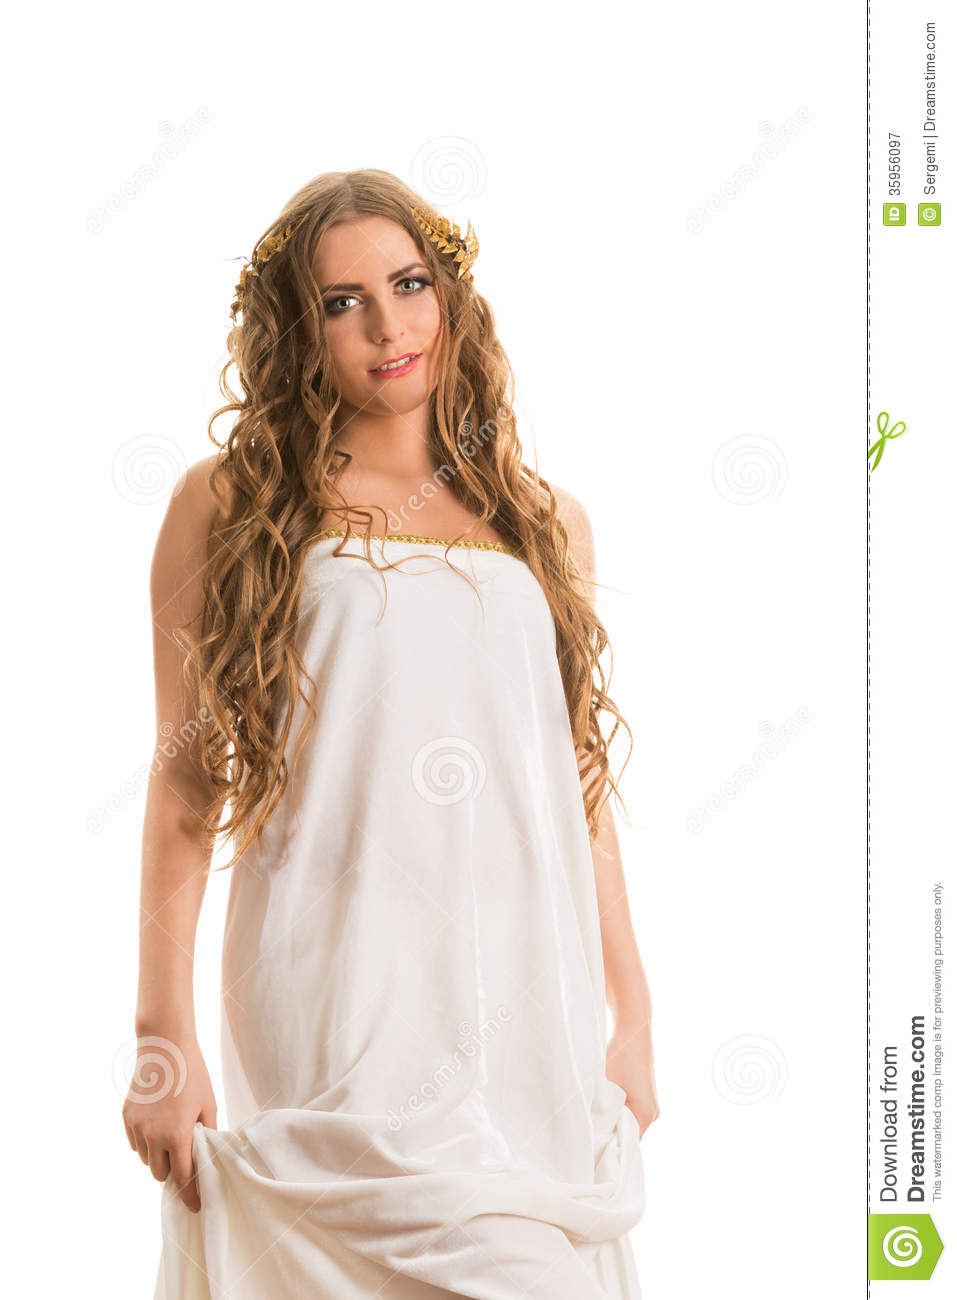 Ancient Greece Woman Royalty Free Stock Photography - Image: 35956097